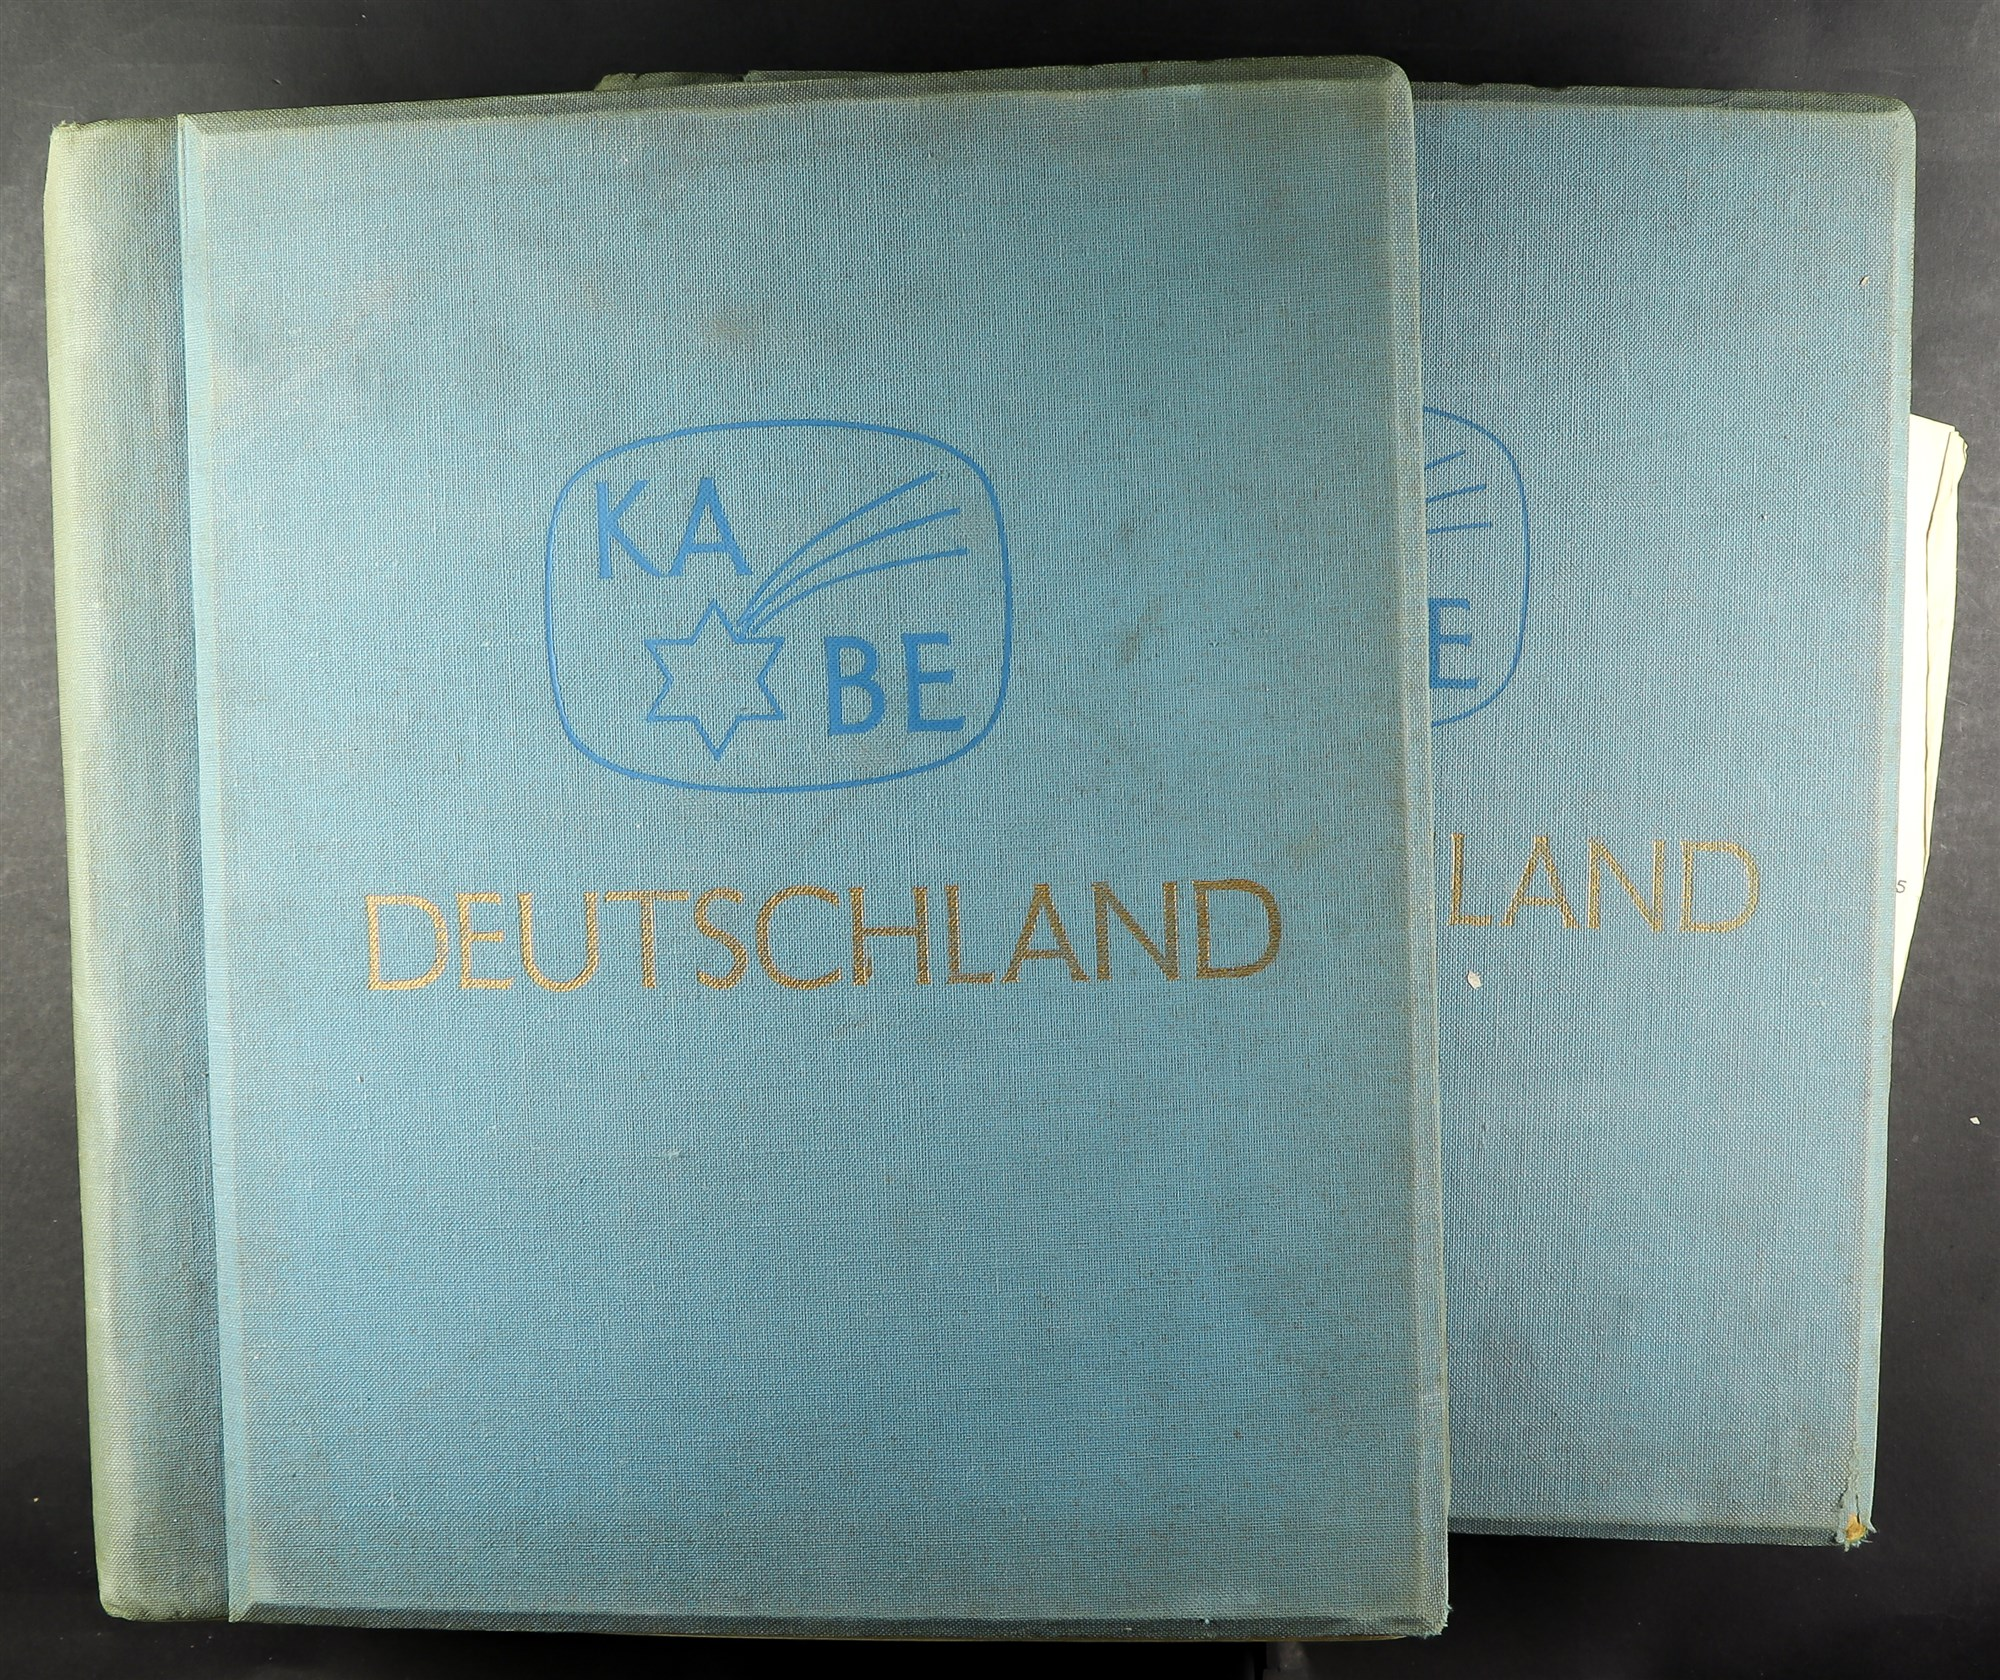 COLLECTIONS & ACCUMULATIONS FRANCE, GERMANY, SWITZERLAND IN TWO LARGE KA-BE ALBUMS with useful - Image 11 of 12